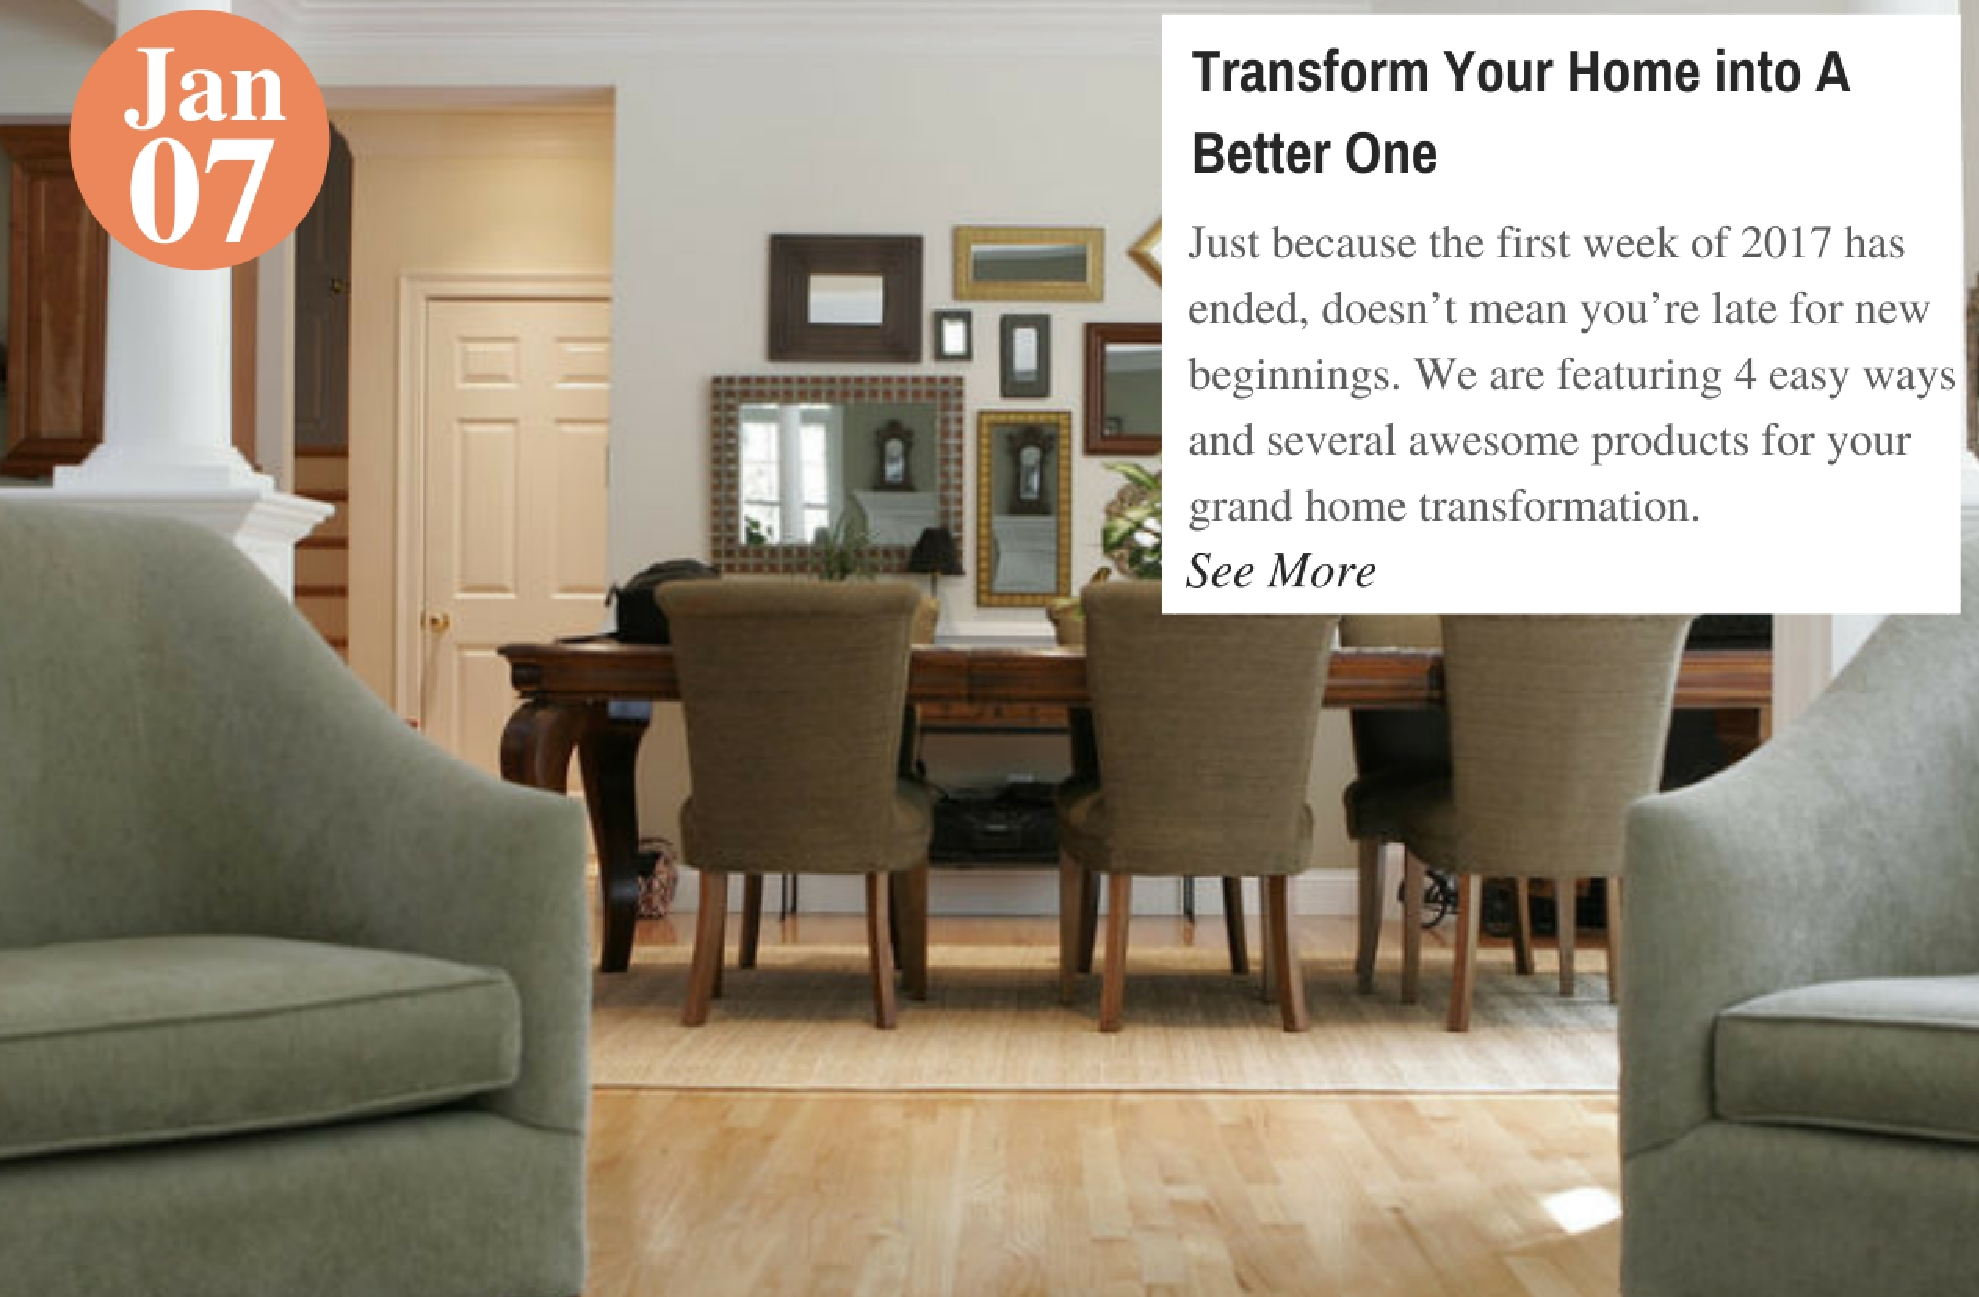 Transform Your Home into A Better One